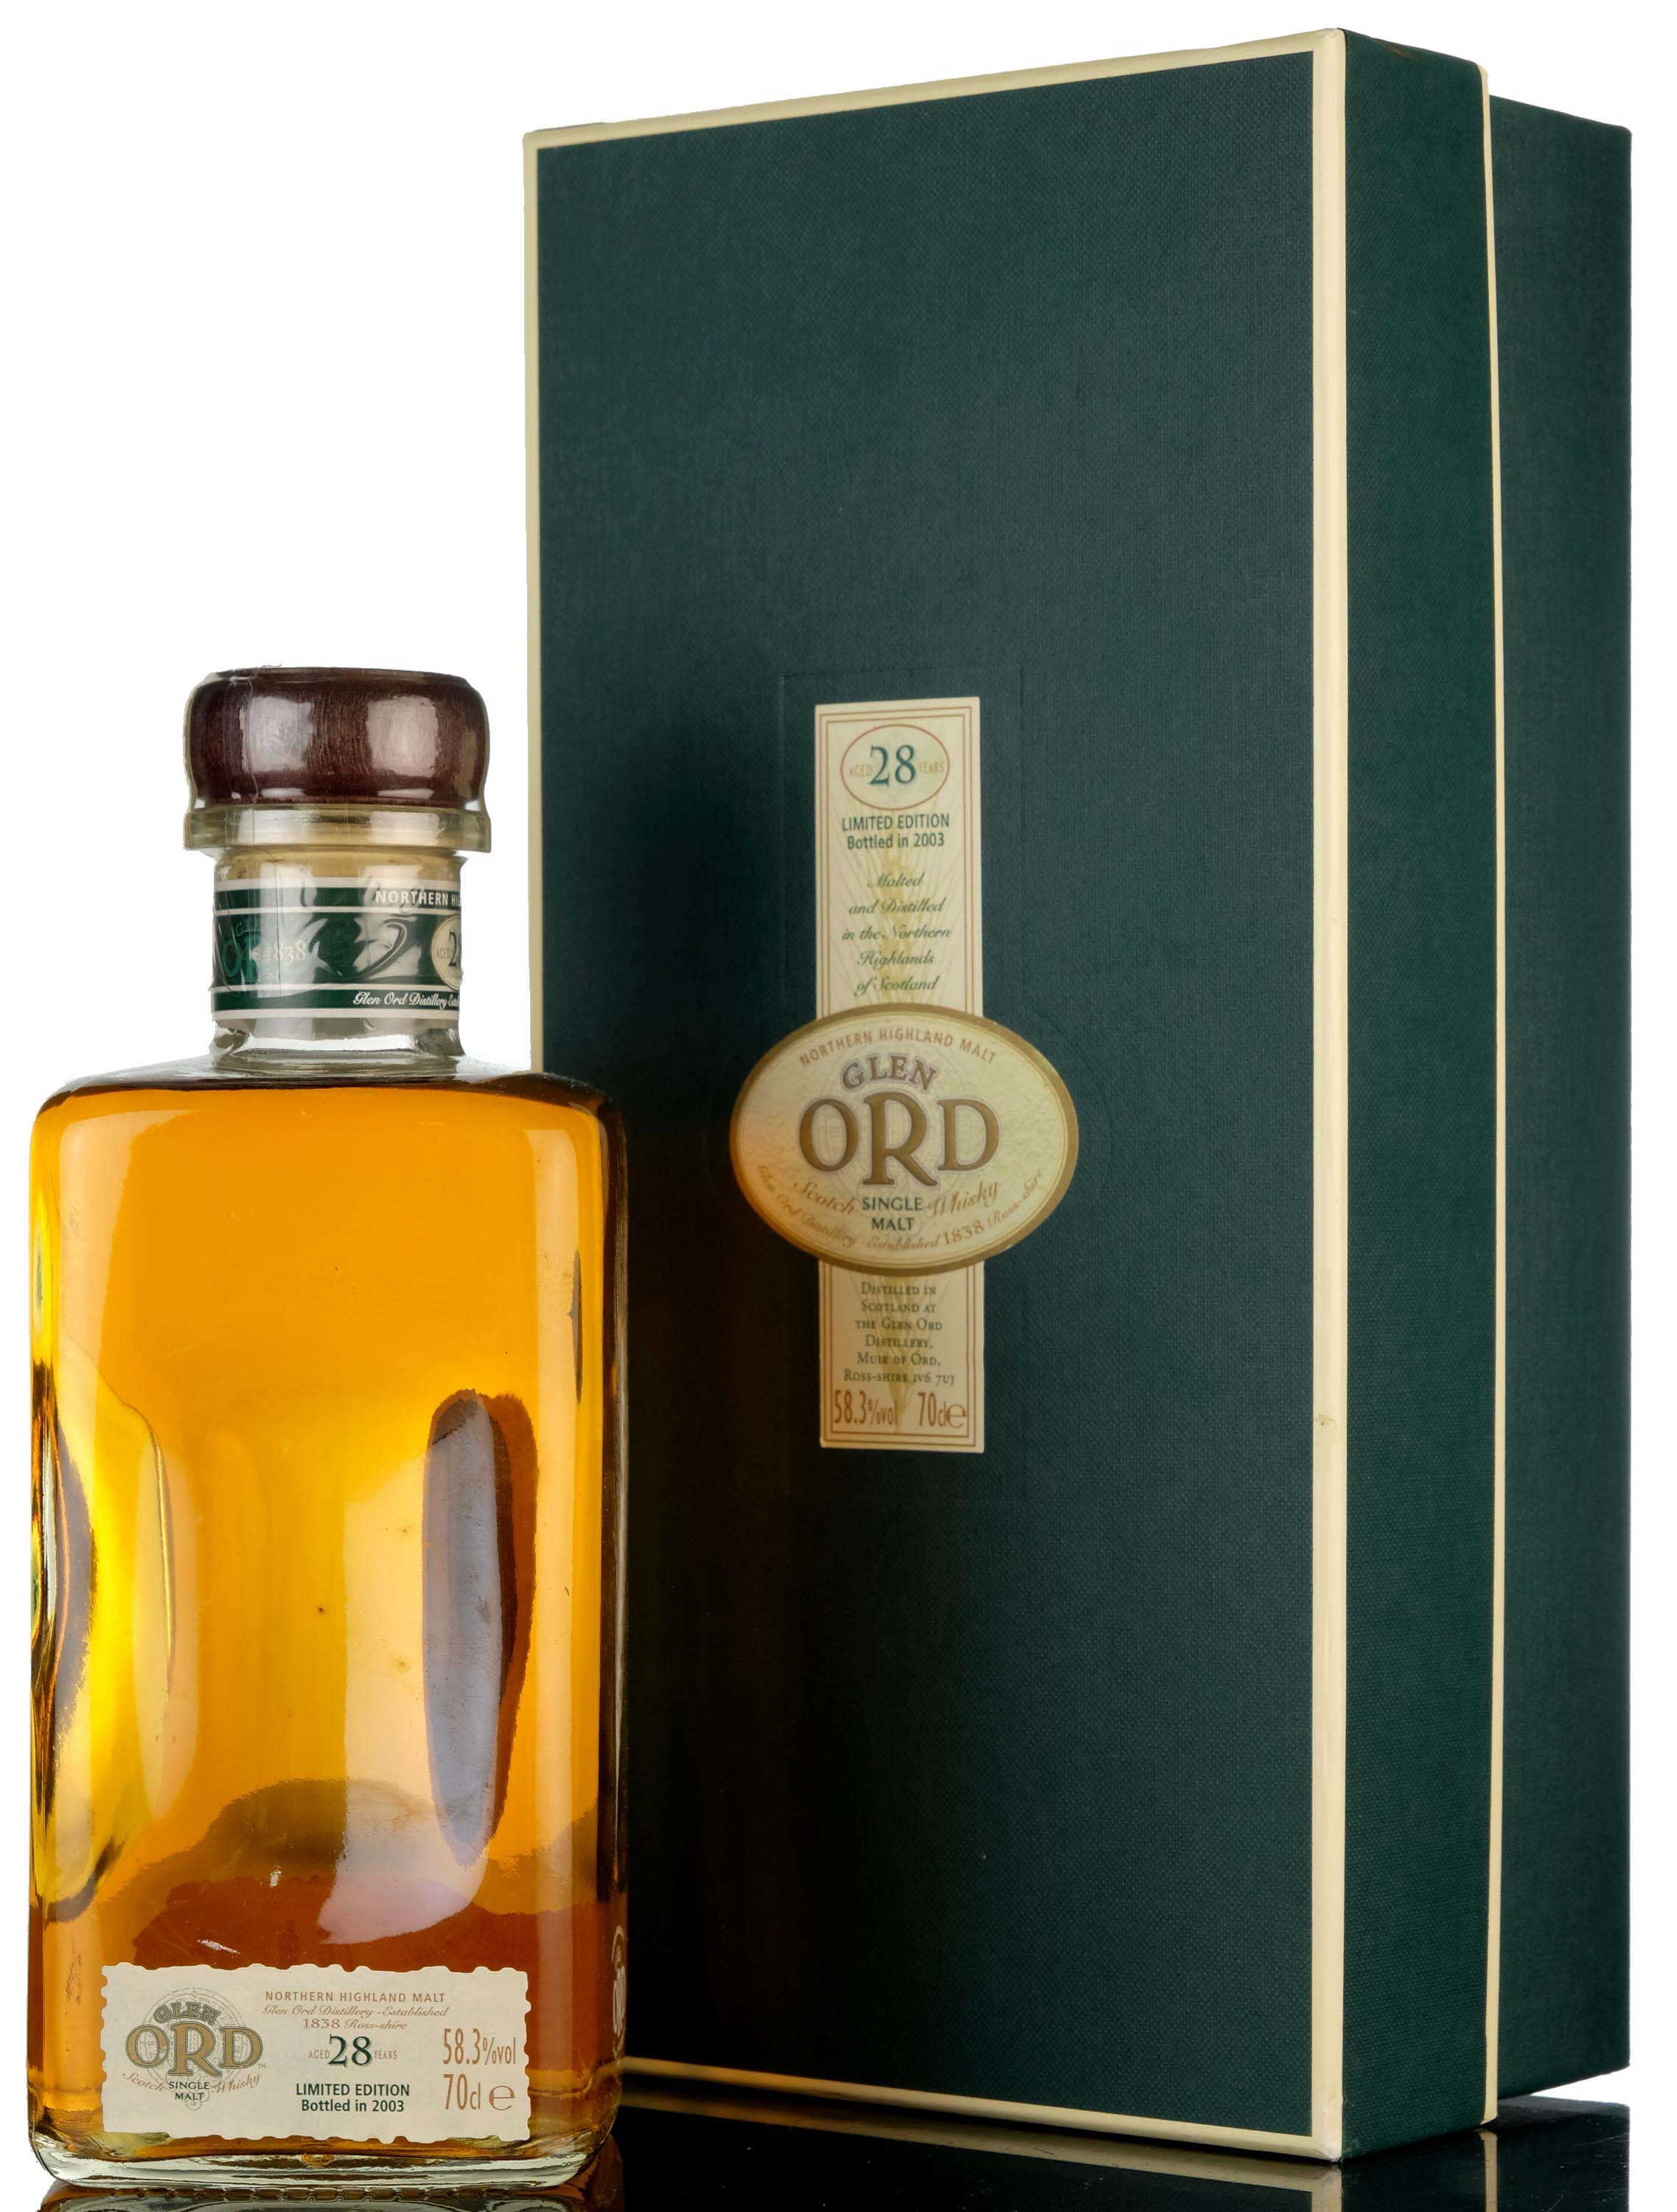 glen ord 28 year old - 2003 special release